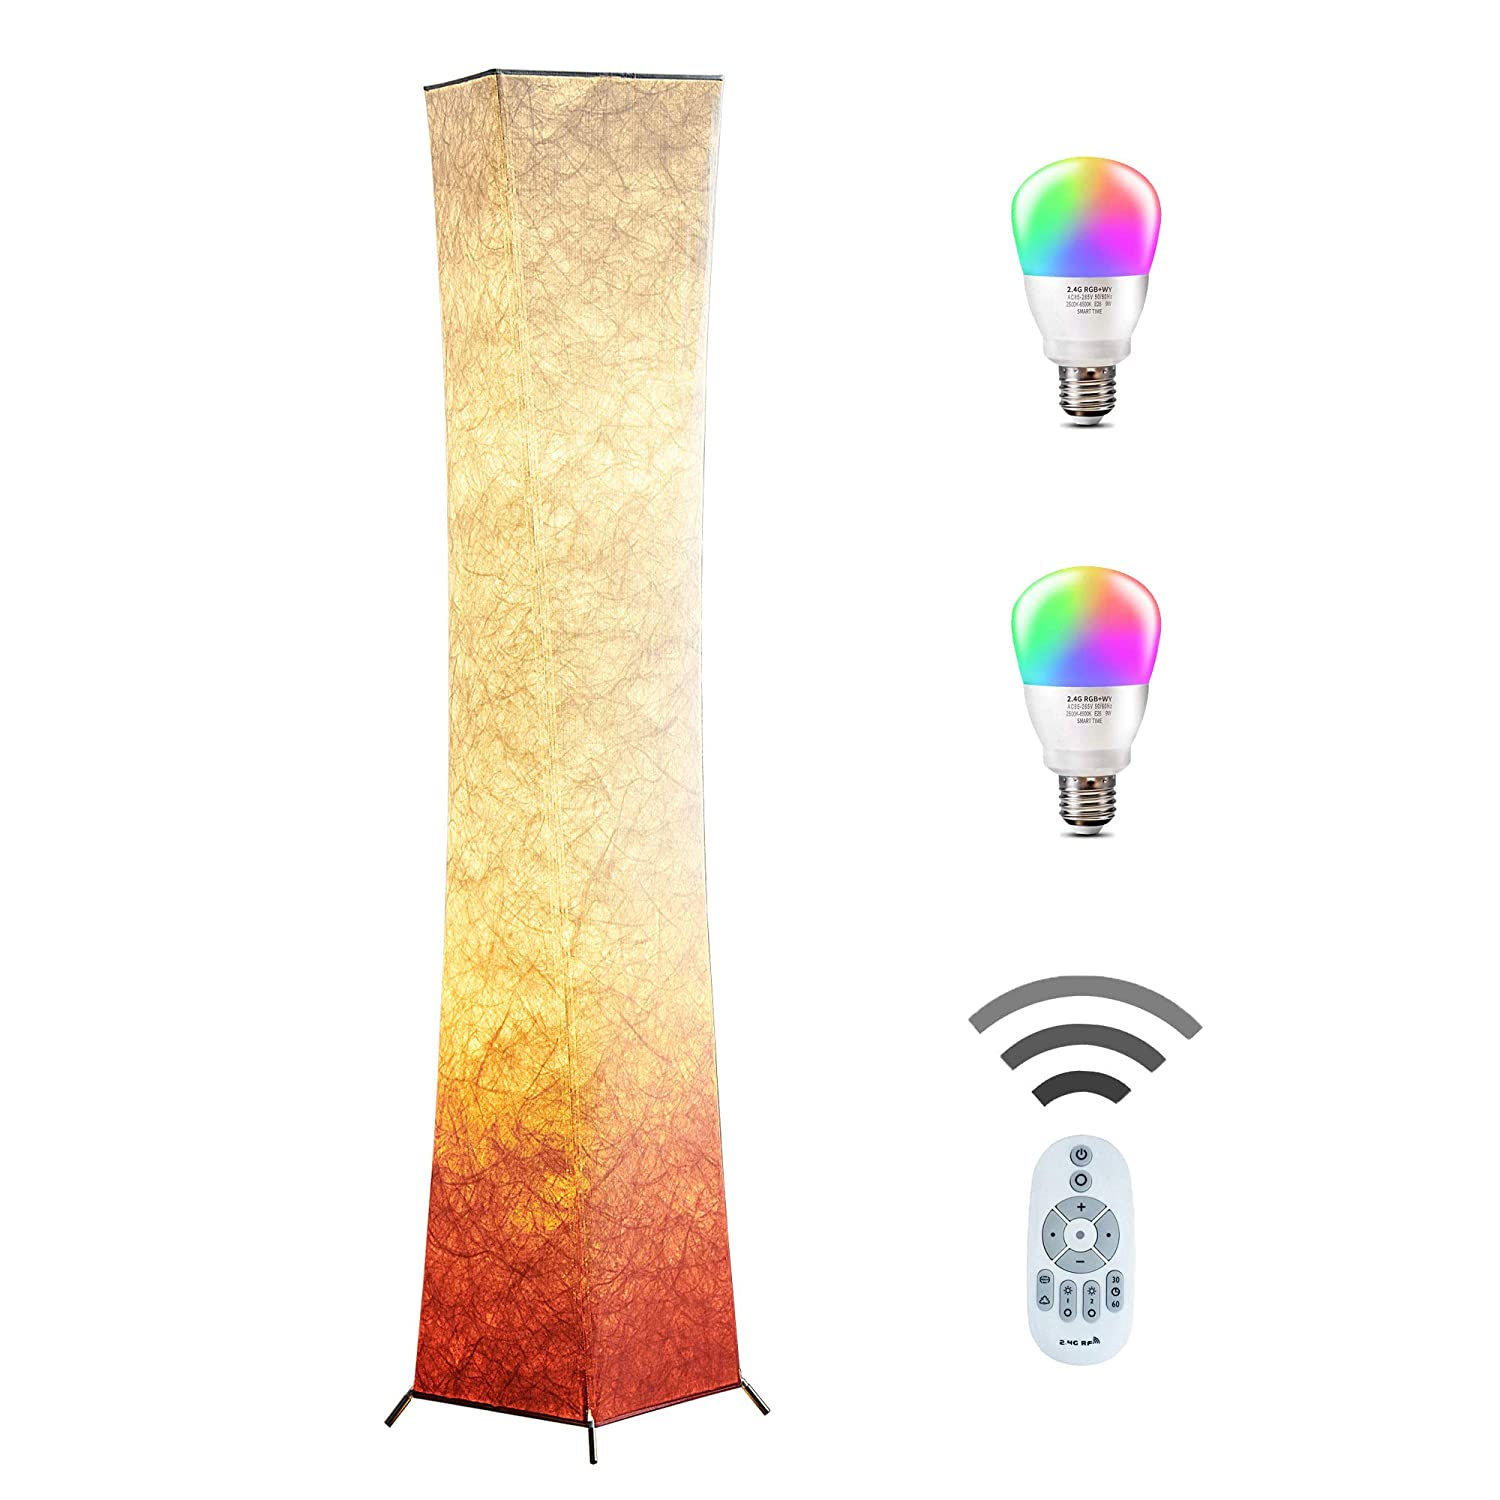 """CHIPHY 61"""" Creative RGB Floor Lamp Remote Control Intelligent Soft Lighting,Minimalist Modern OTT Standing Light with 2 Smart LED Bulbs,Pink Floor Lamp for Living Room, Bedroom,Sofa,Hotel.(Pink, L)"""